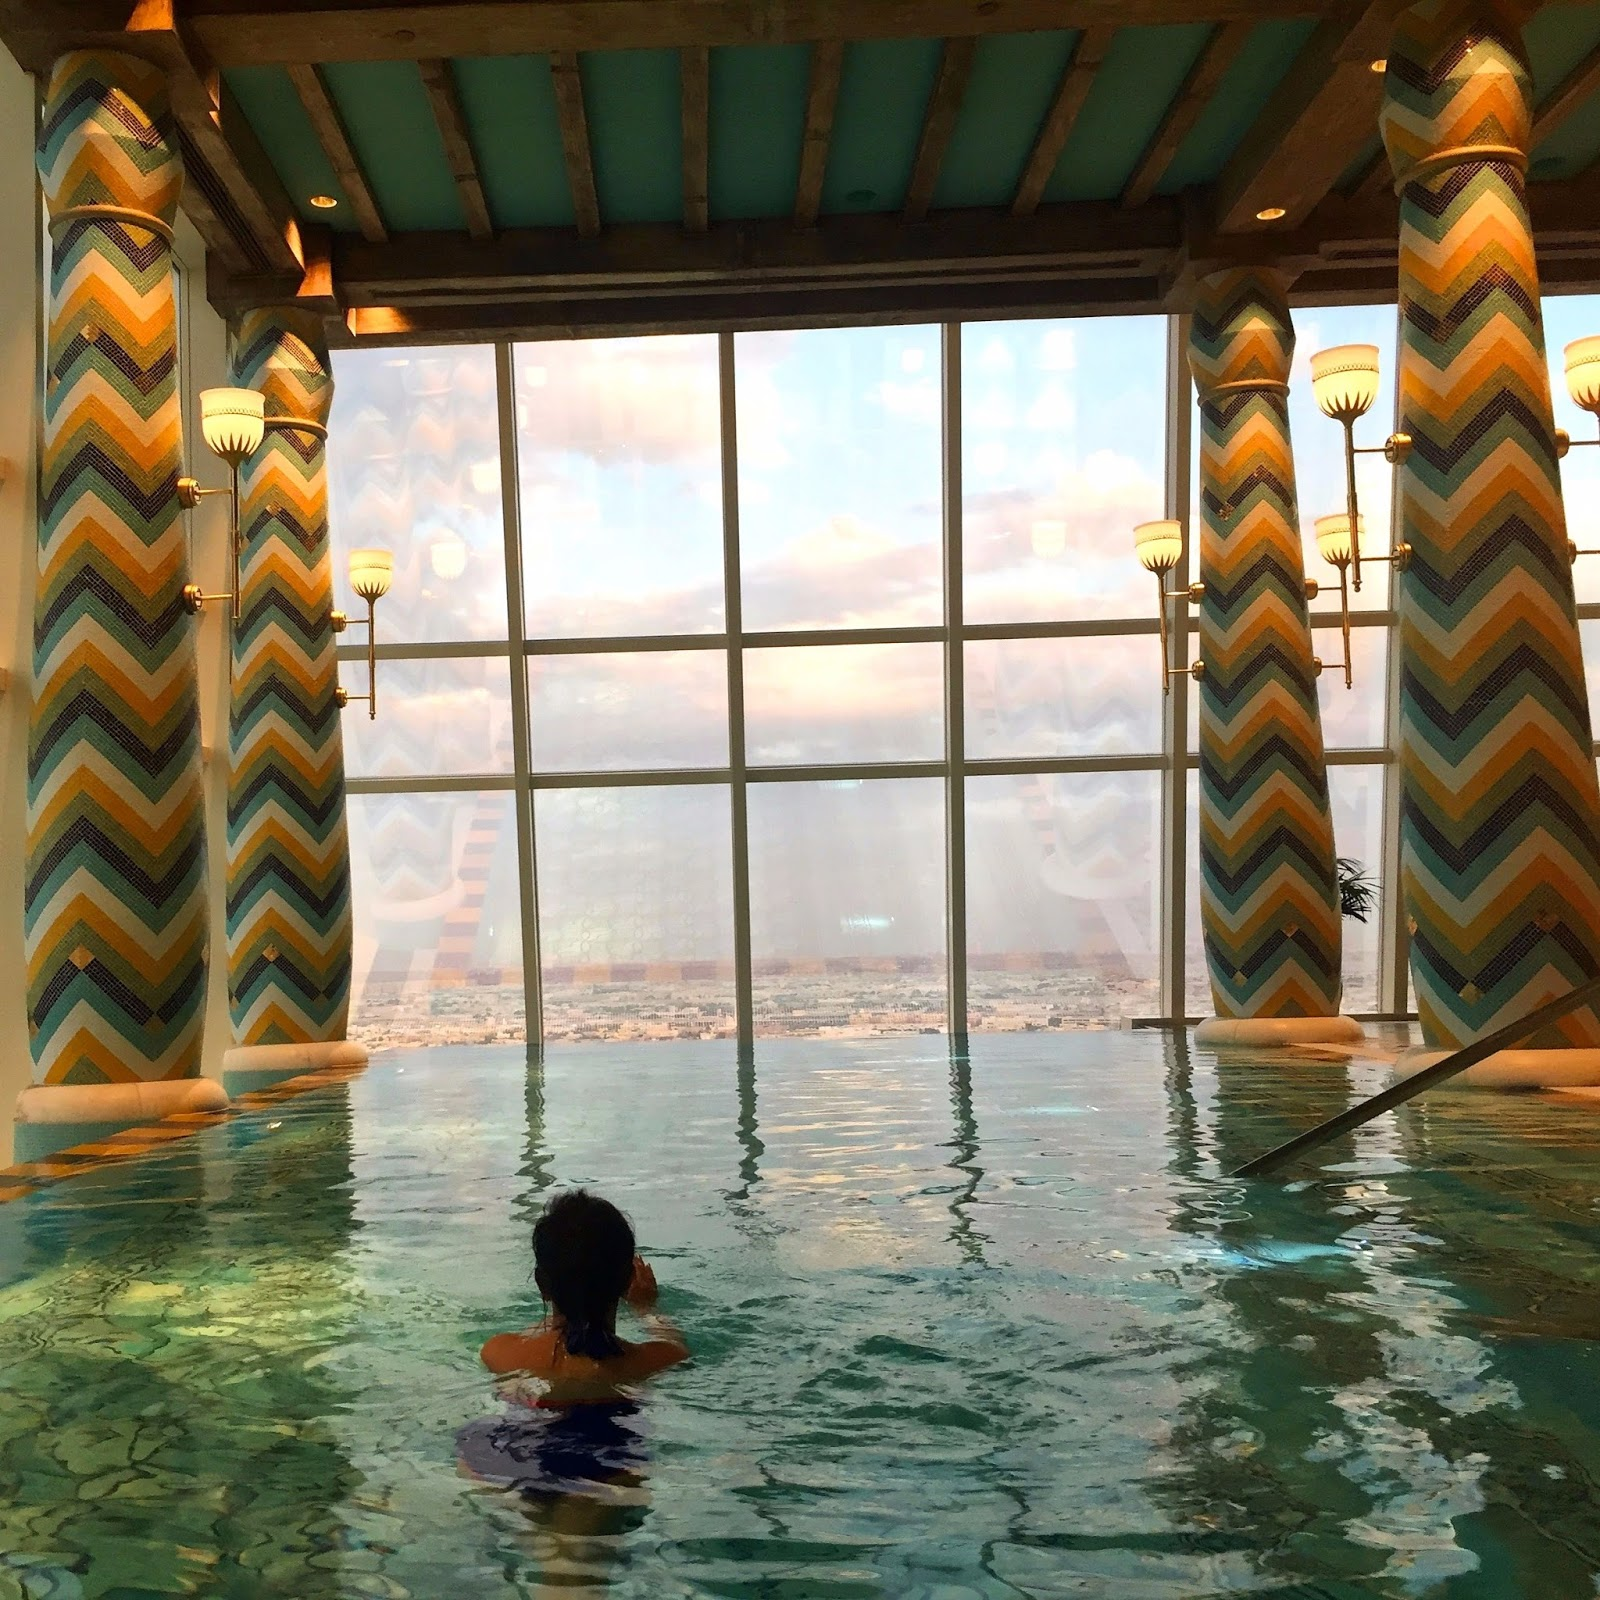 Burj Al Arab Review - Vegan Dubai Travel - Indoor Pool